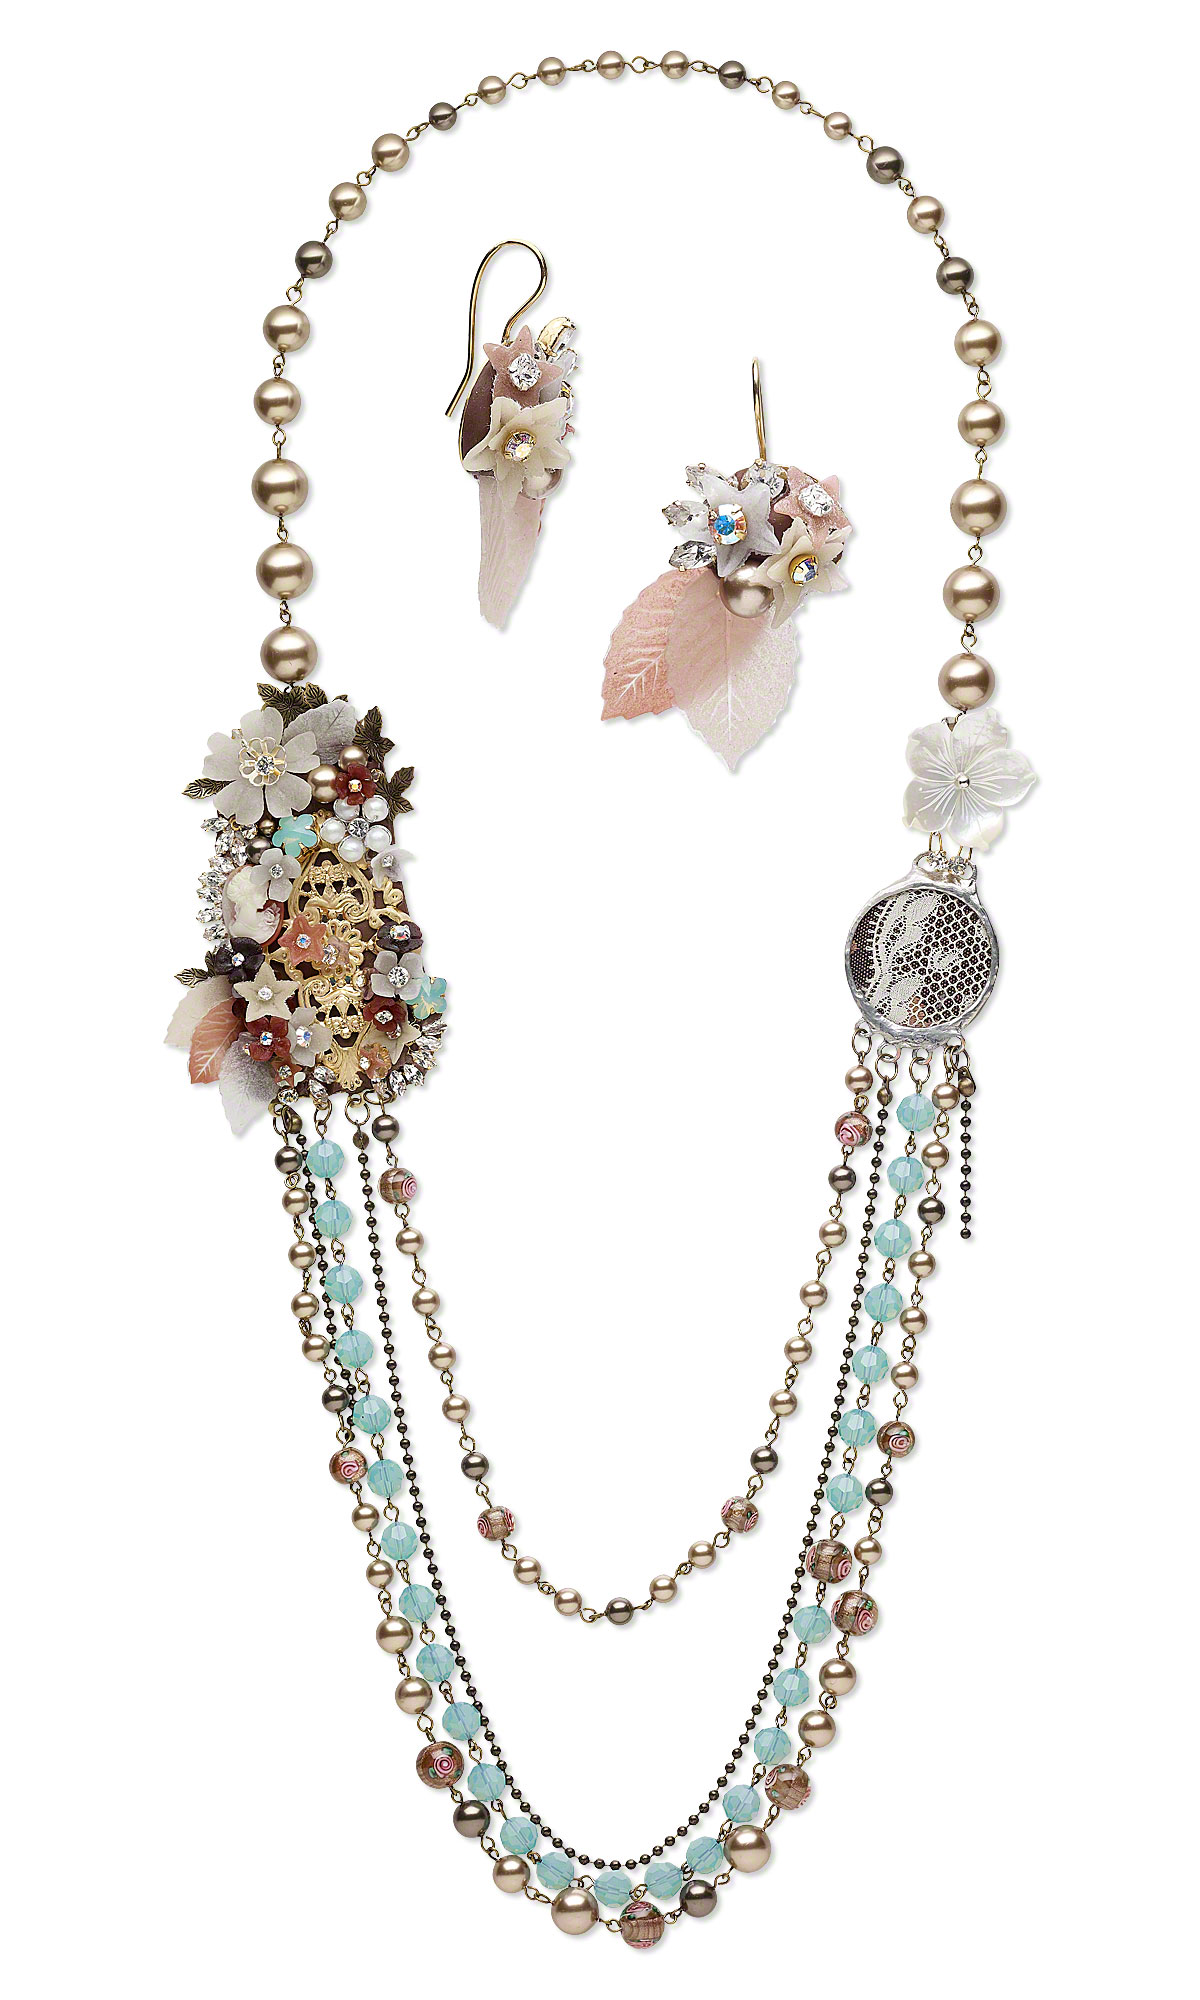 Jewelry Design - Multi-Strand Necklace and Earring Set with ...